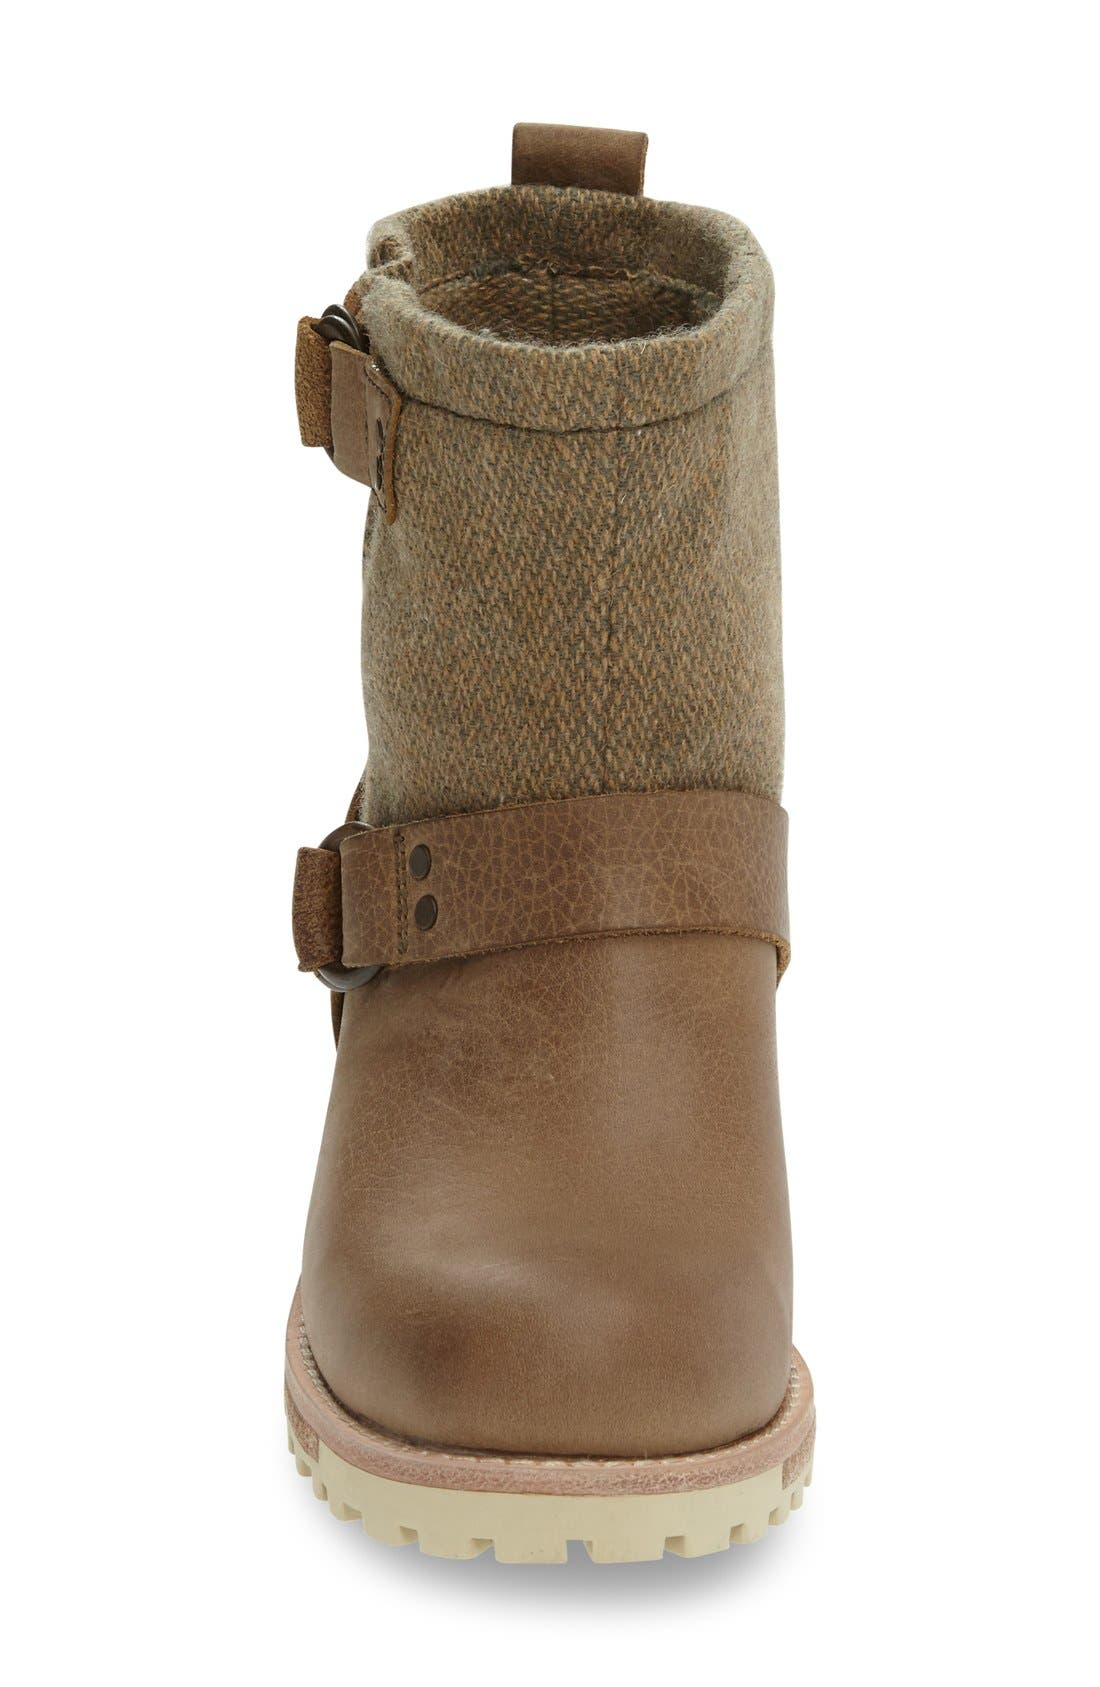 'Baltimore' Engineer Boot,                             Alternate thumbnail 3, color,                             Sand/ Tweed Leather